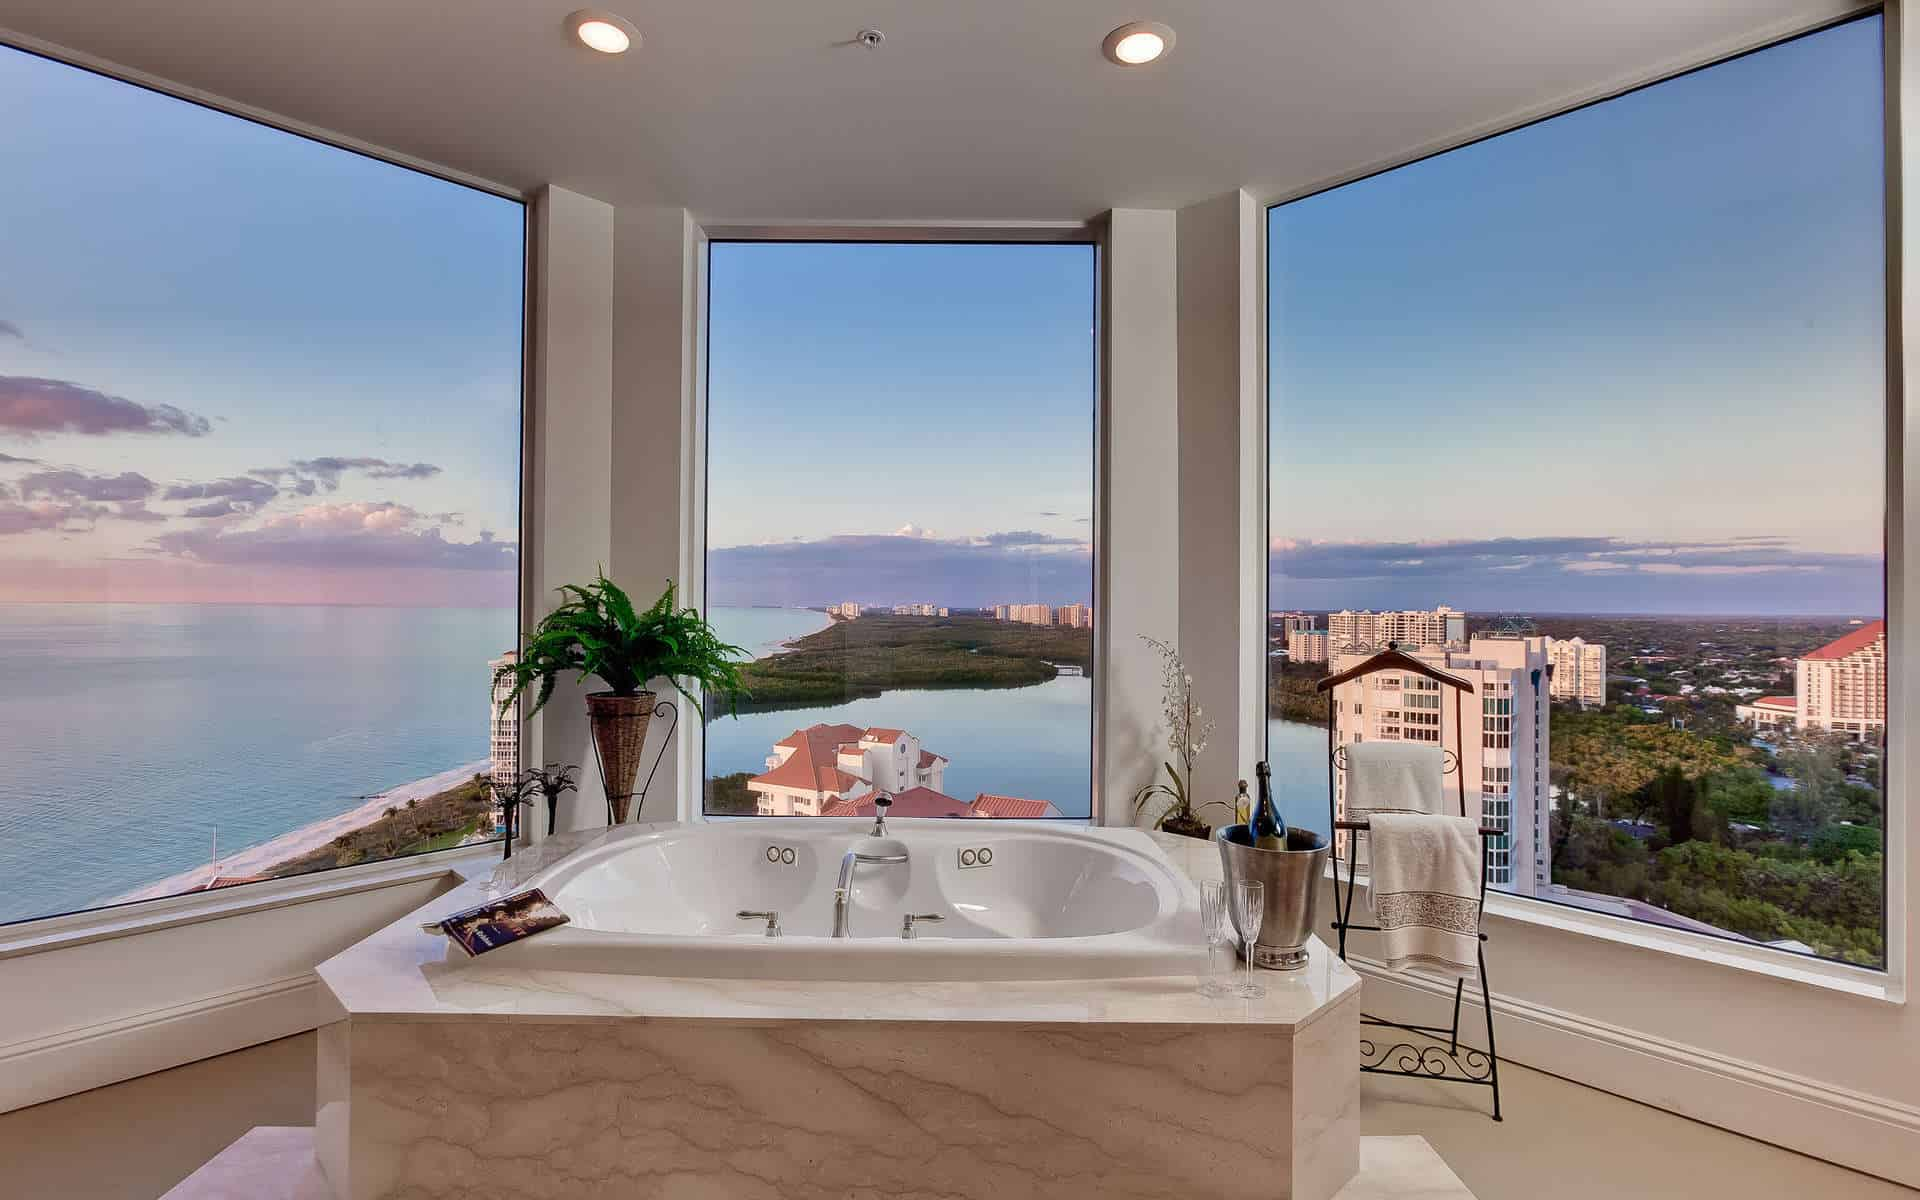 Delicieux View In Gallery Naples Fl Bathroom With A Long View Over